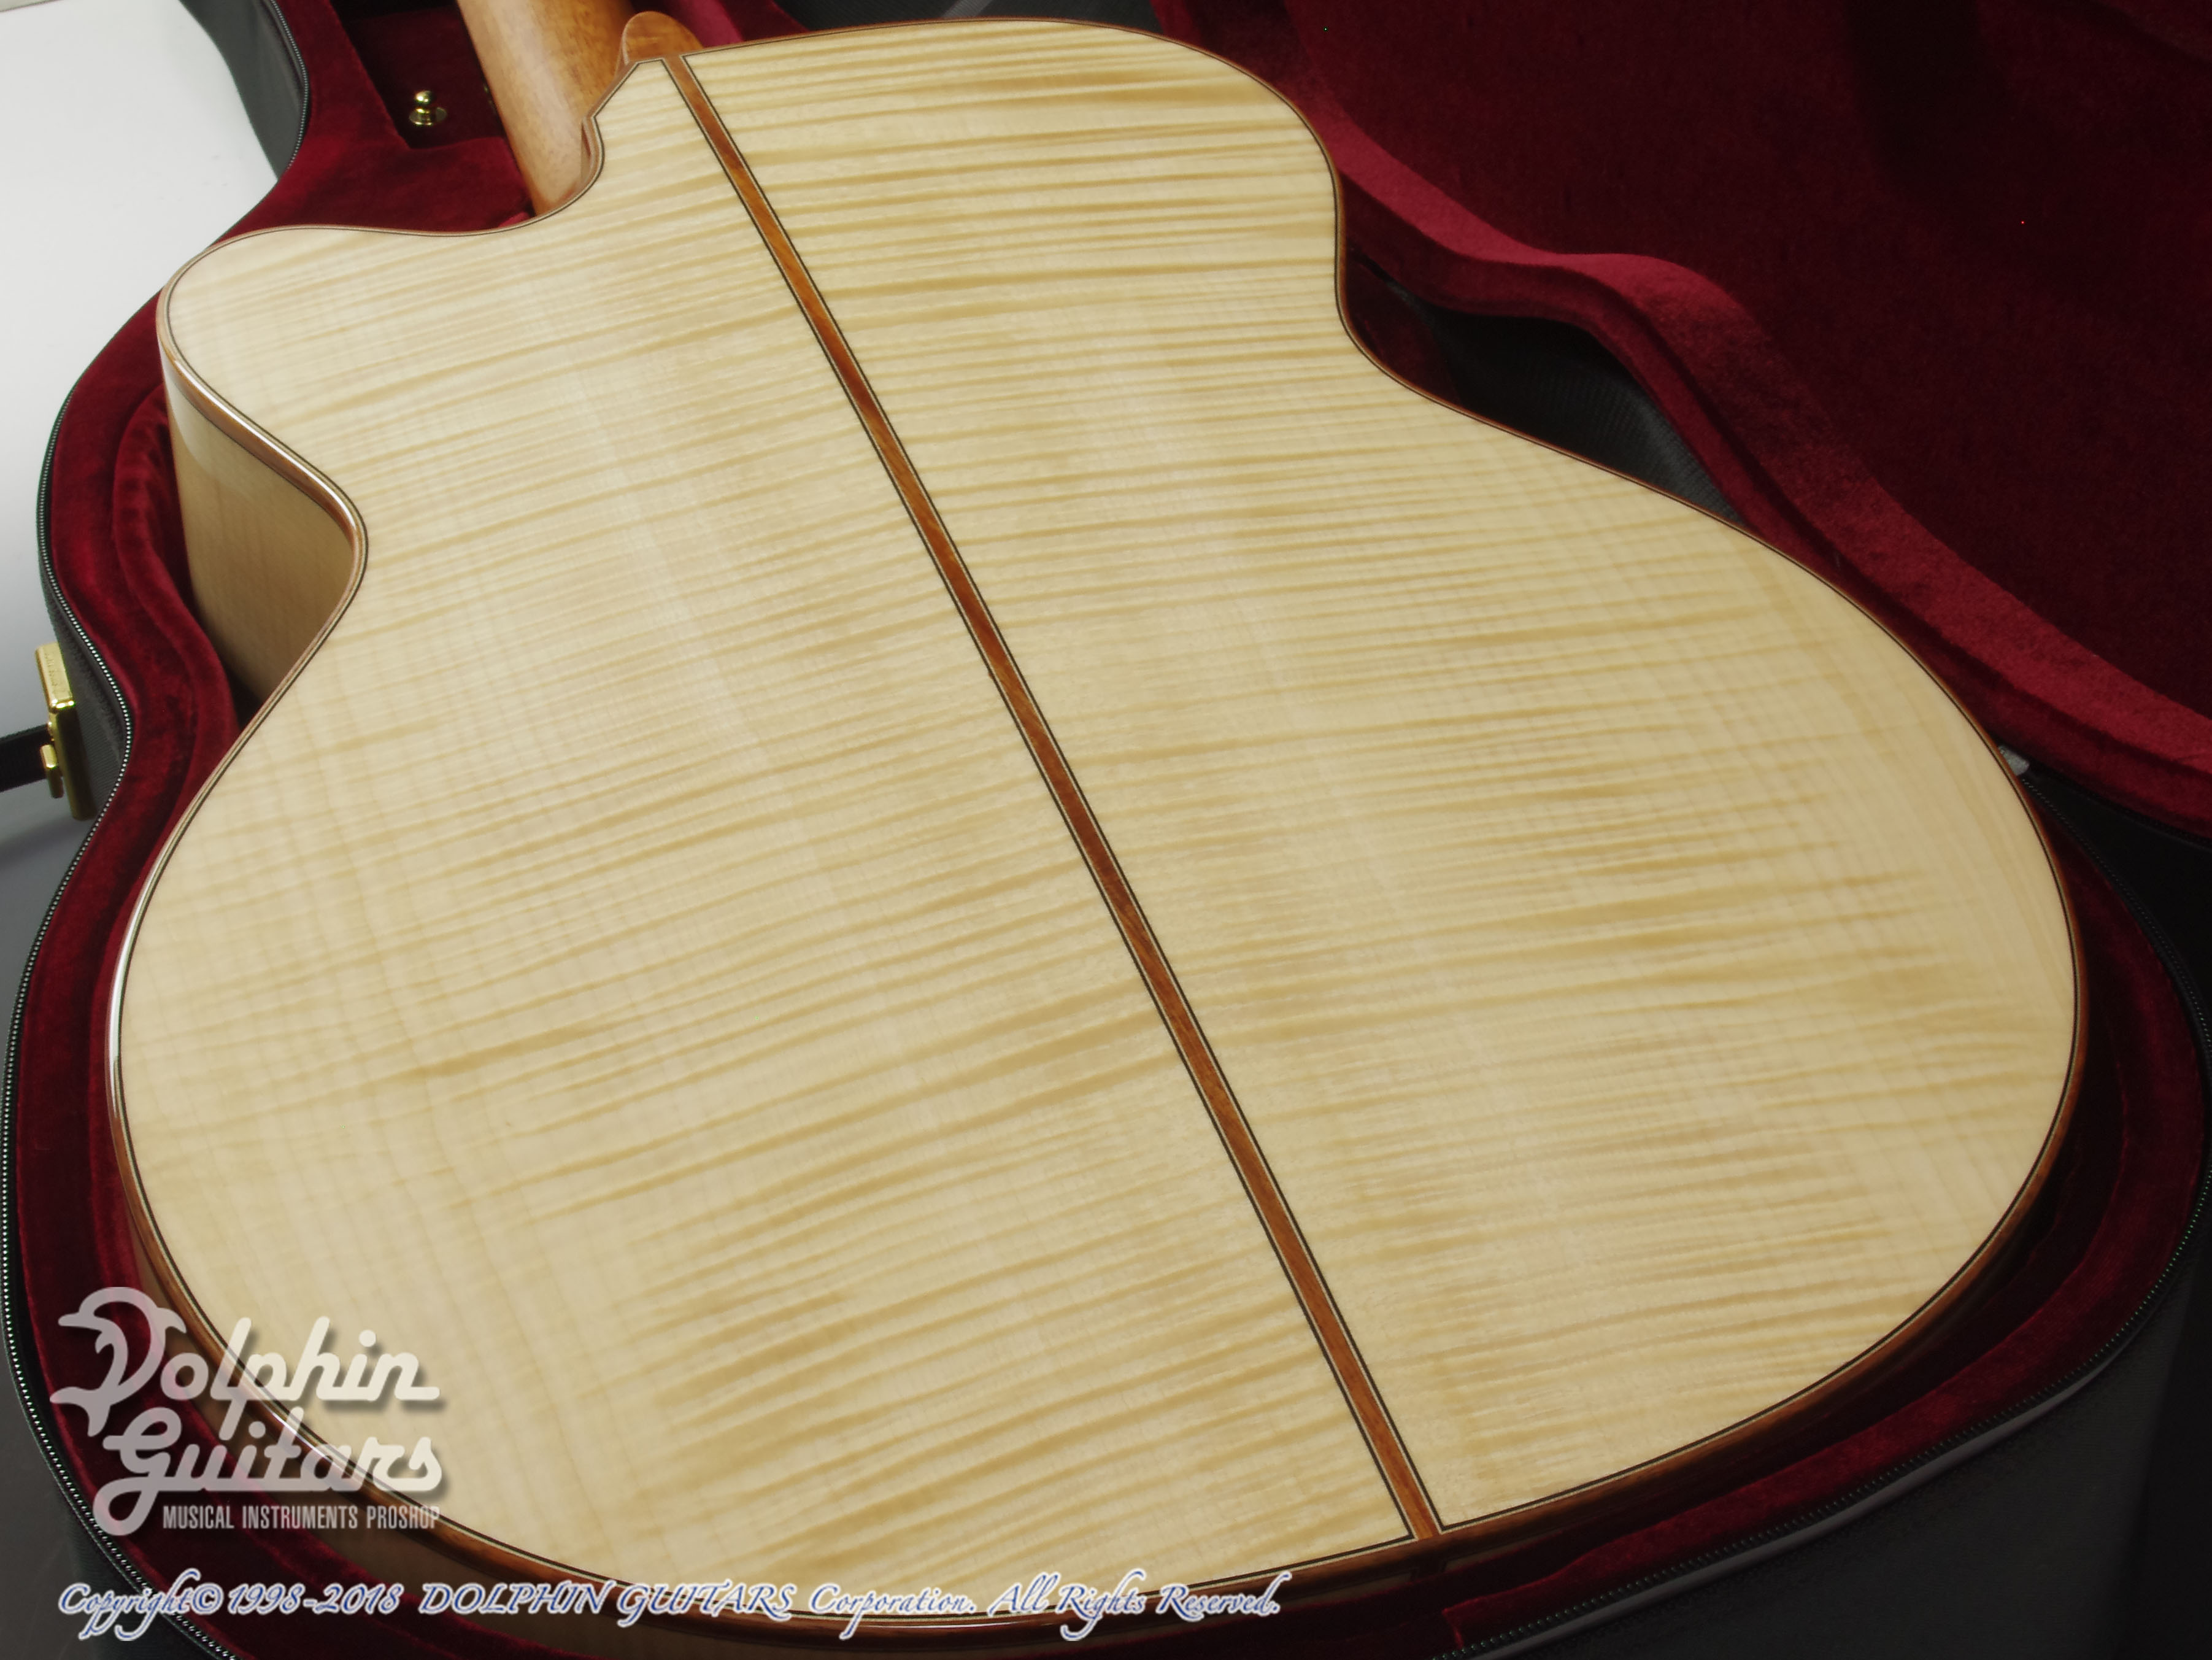 ASTURIAS: Grand Solo Premio Premio/S Maple LTD (Curly Maple) (10)